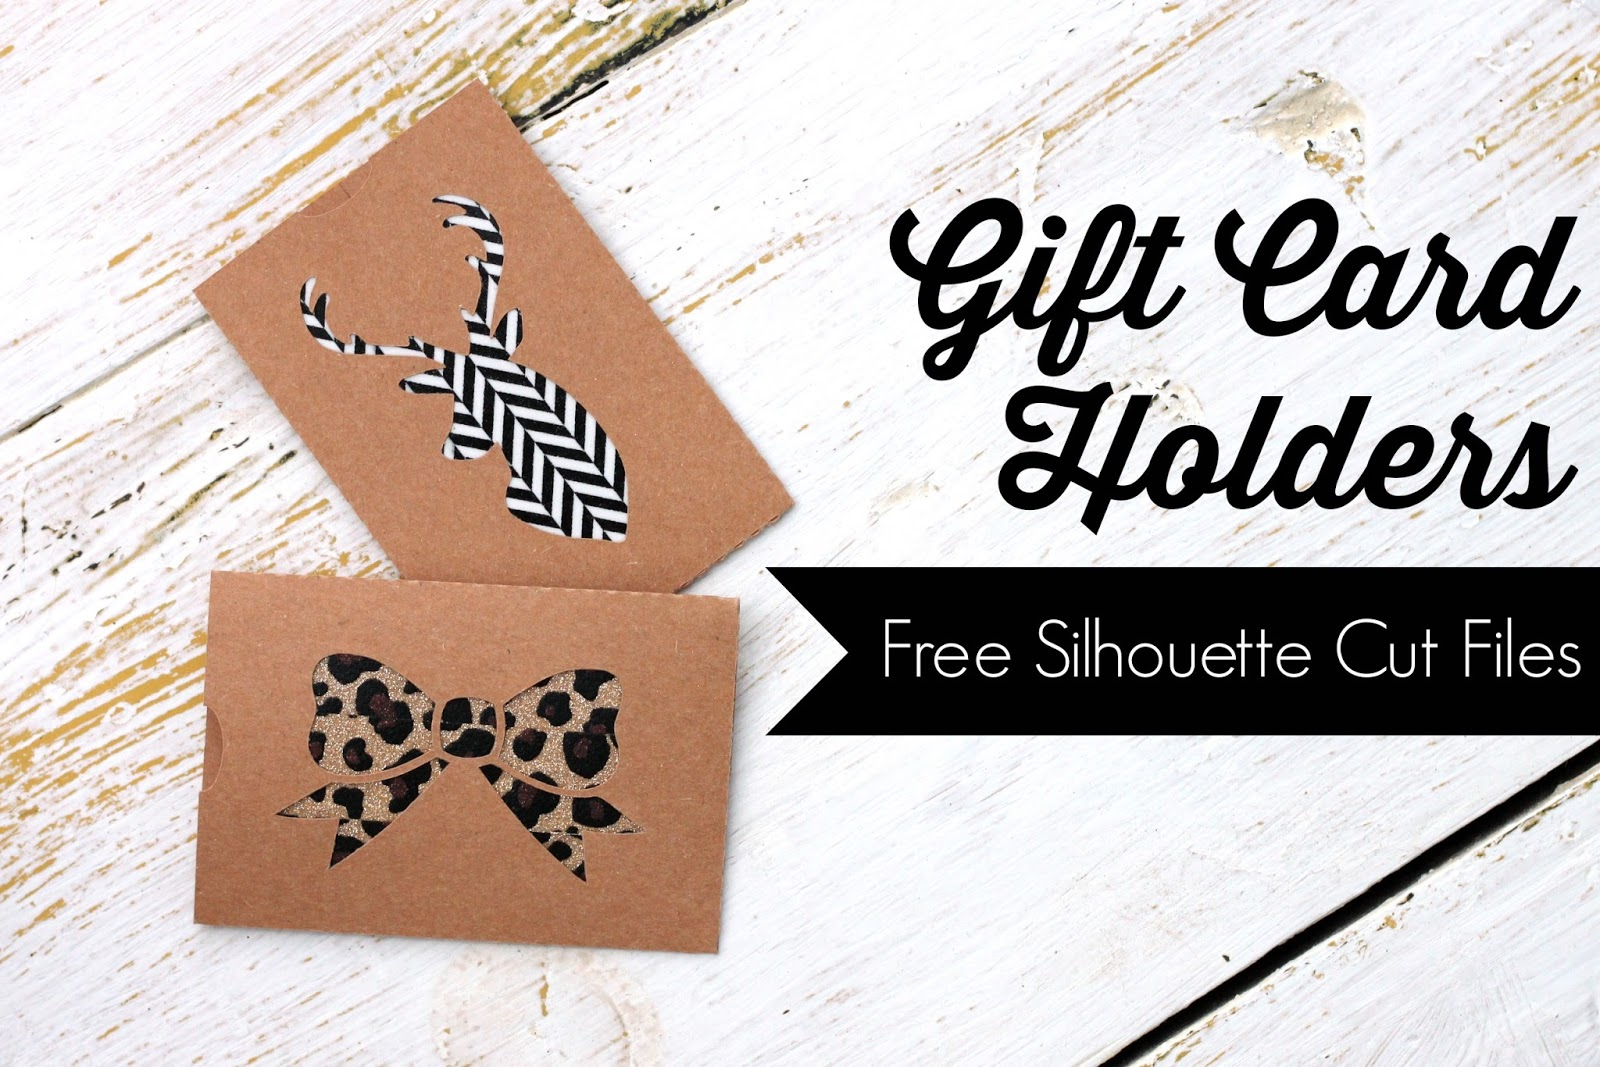 Pitterandglink diy gift card holders with free silhouette cut files diy gift card holders with free silhouette cut files via pitterandglink negle